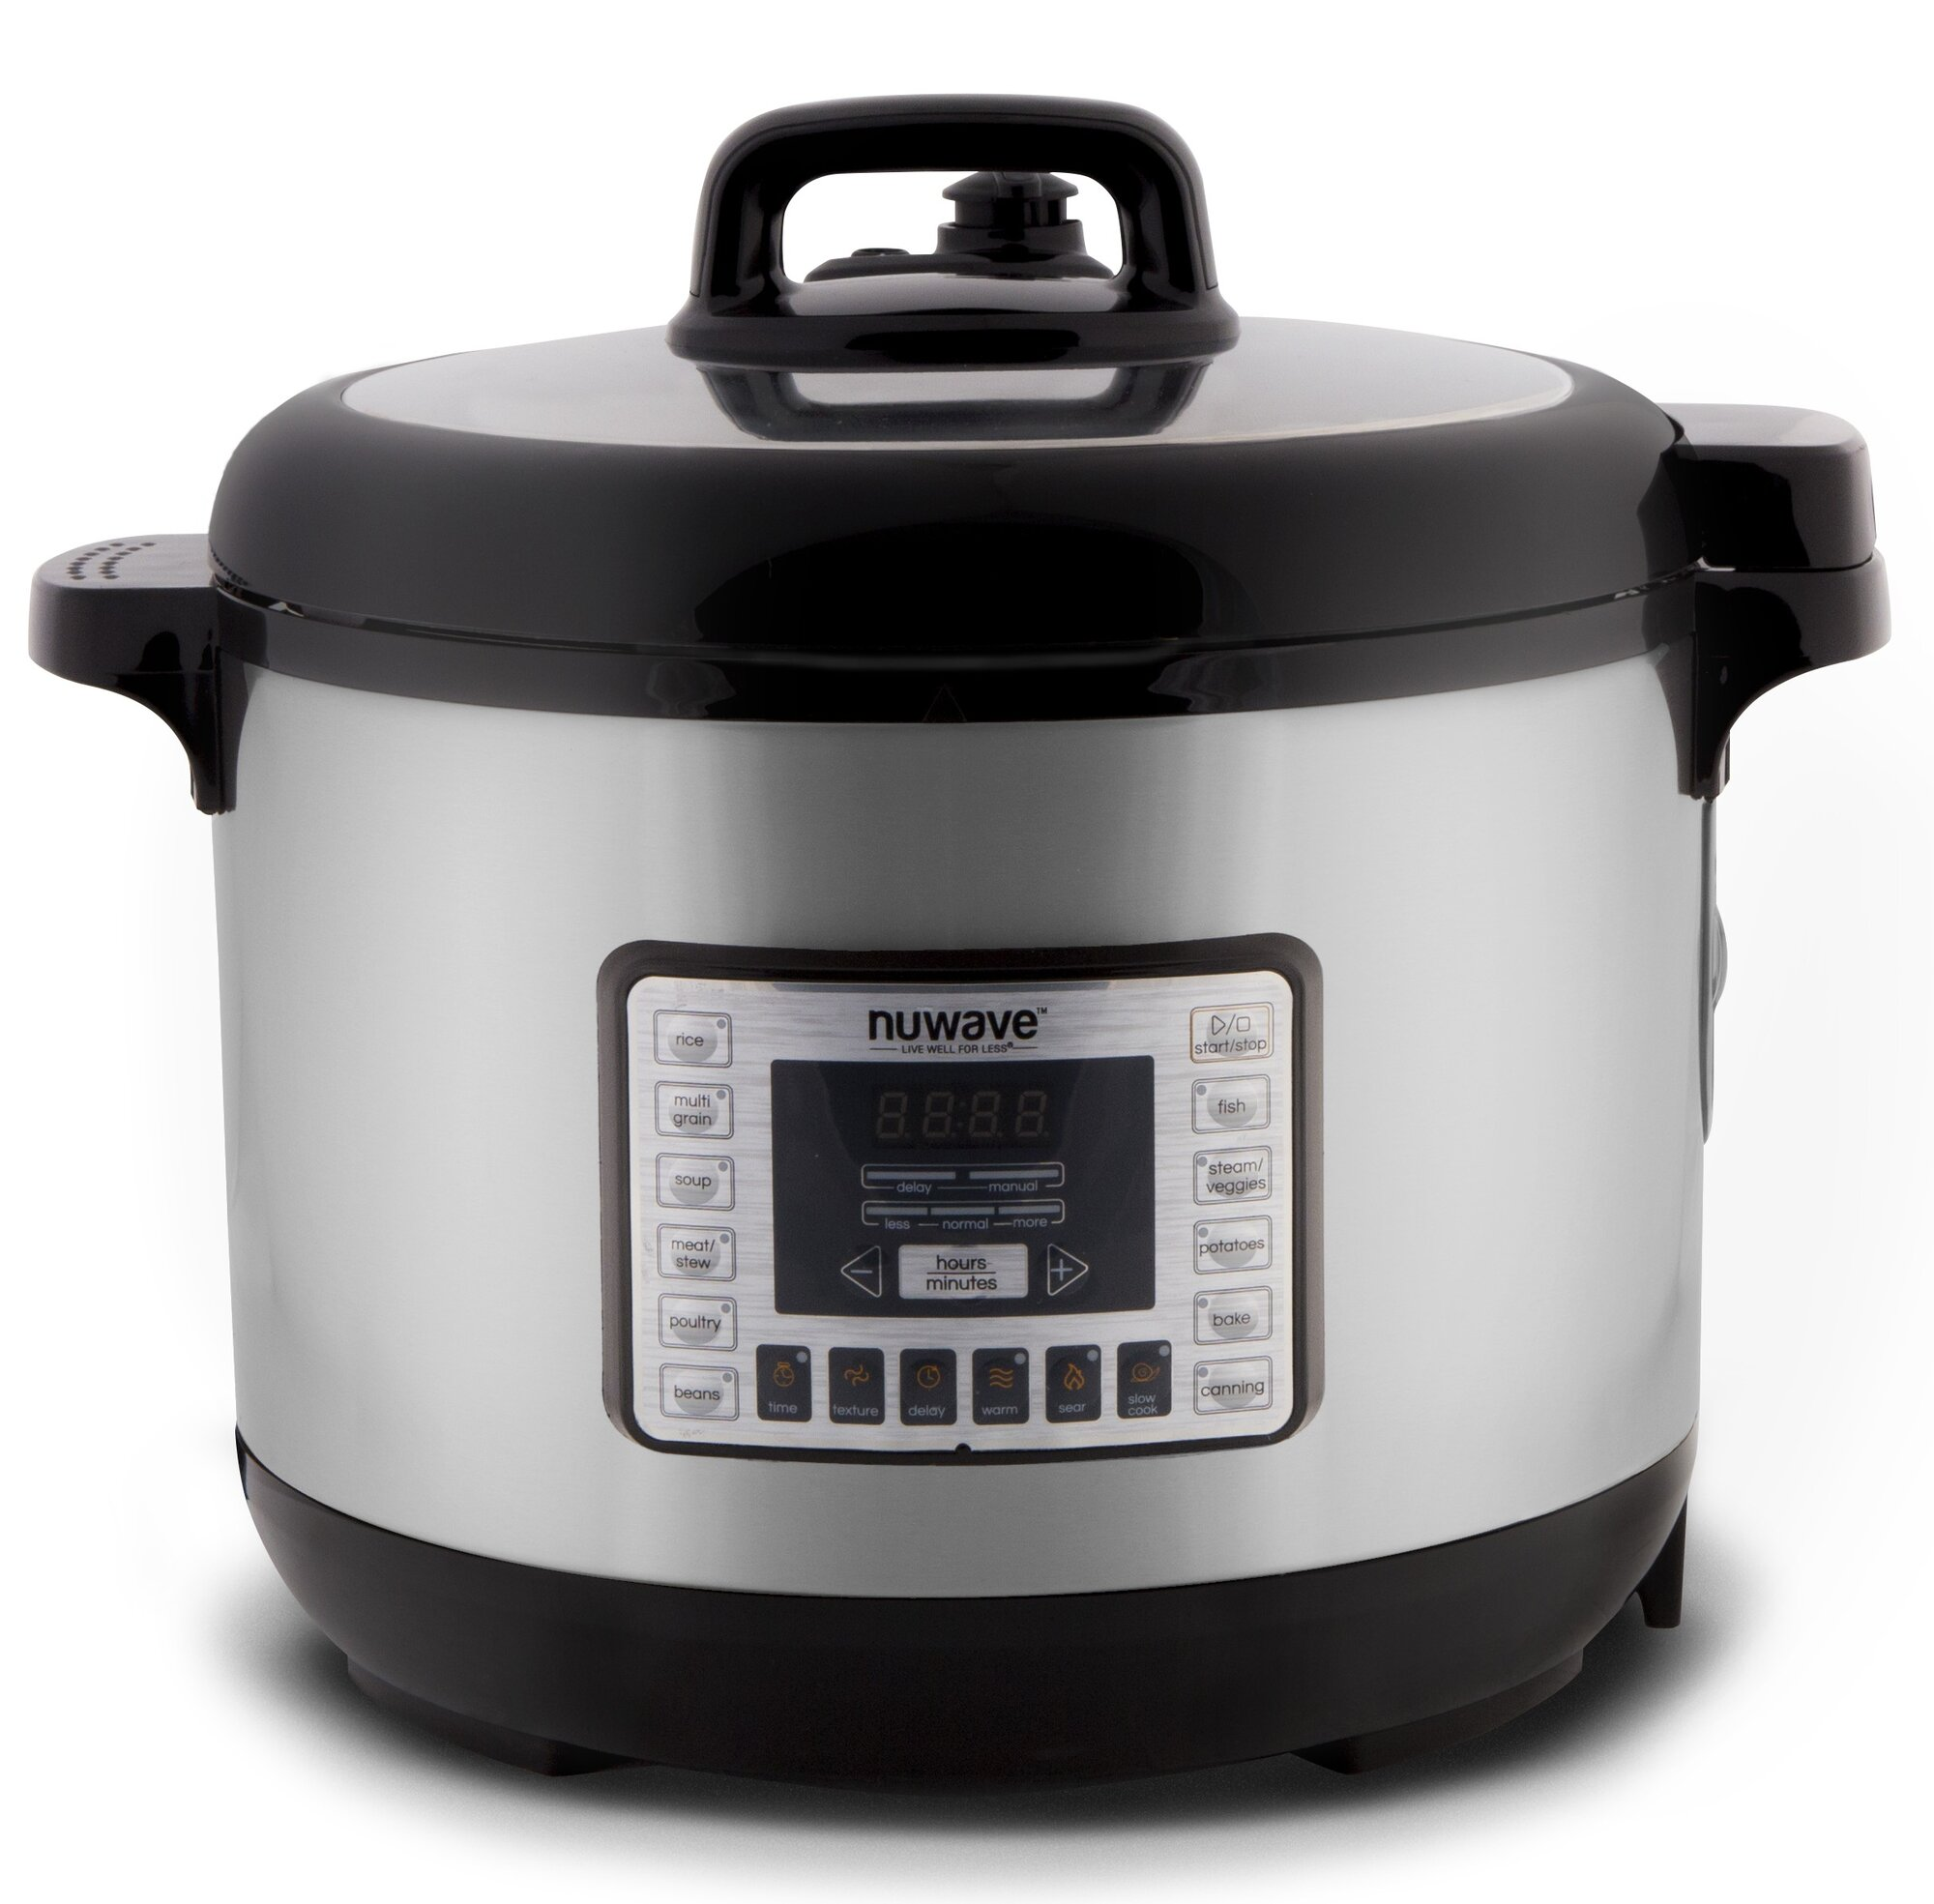 Electric Pressure Cooker For Canning ~ Nuwave electric pressure cooker ebay